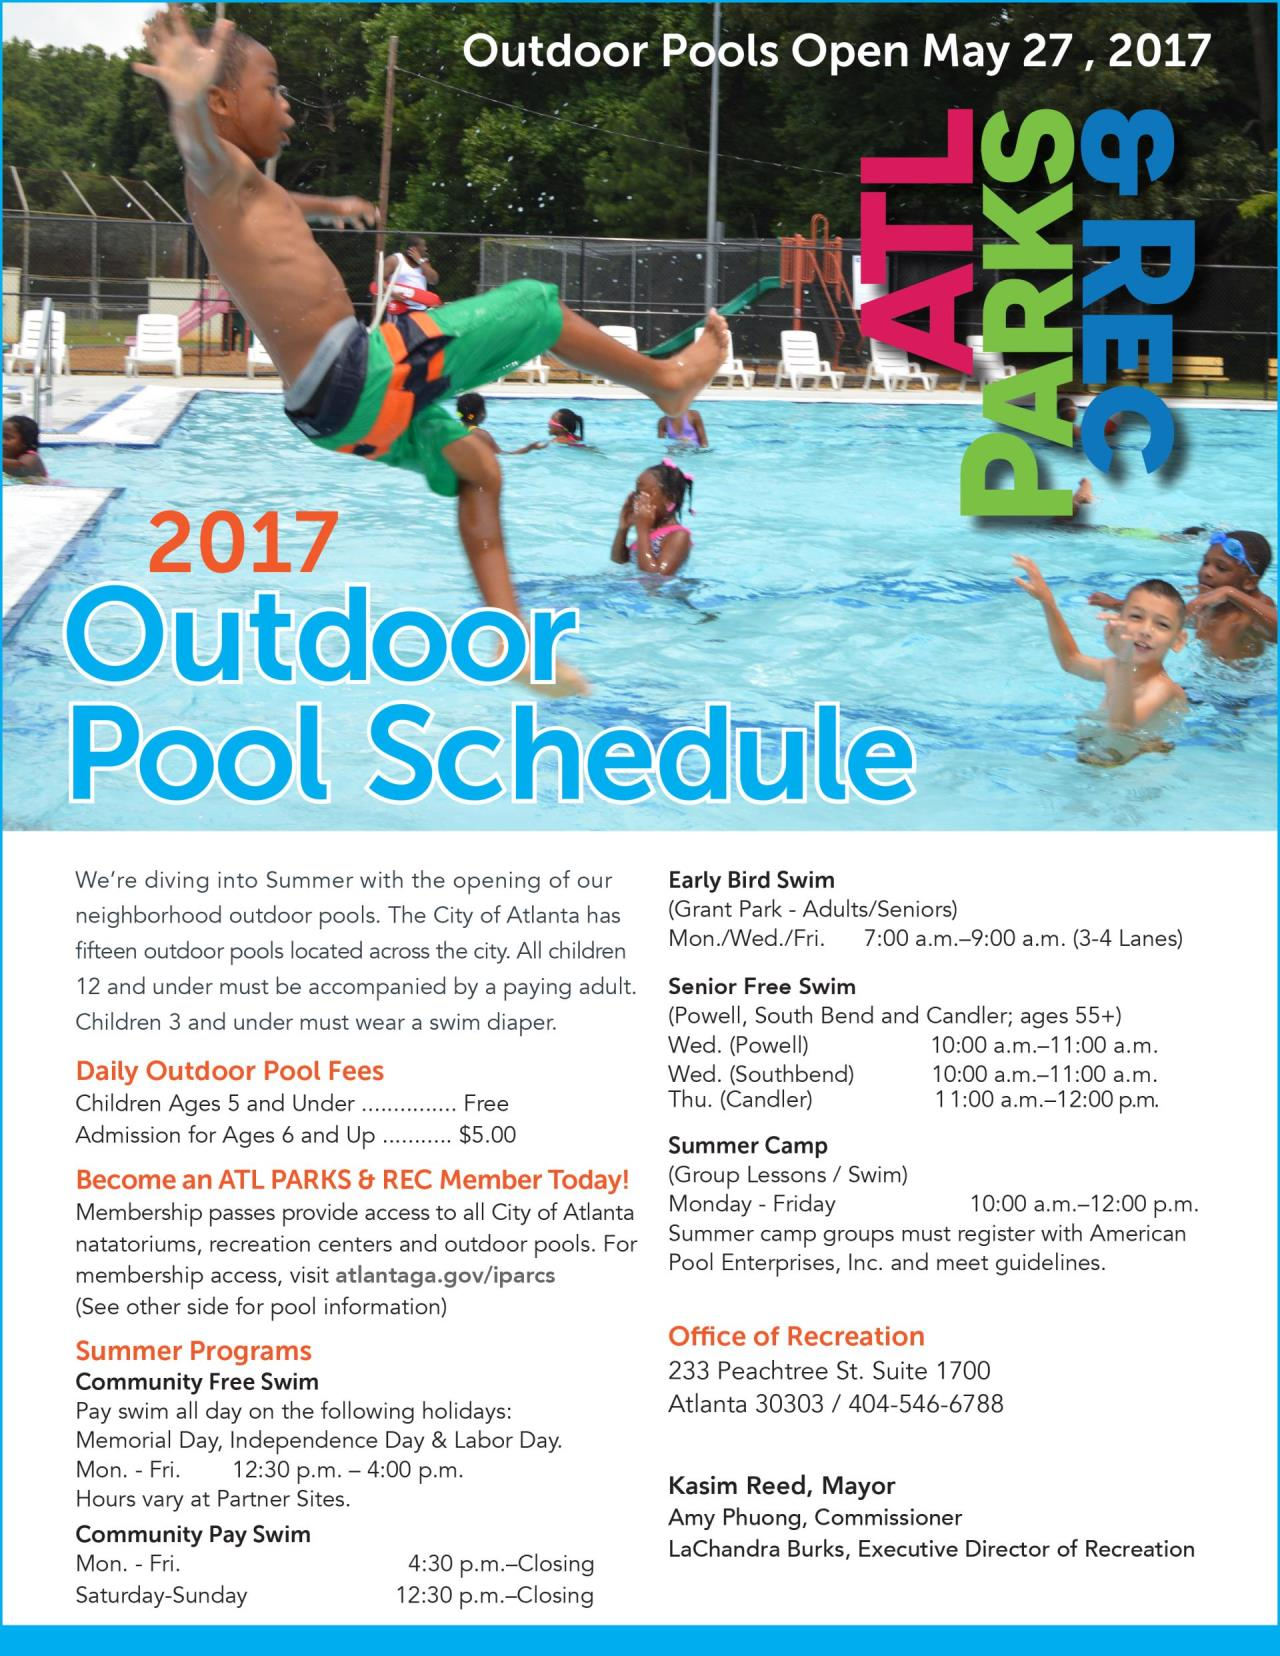 2017 Outdoor Pool Schedule-1.1